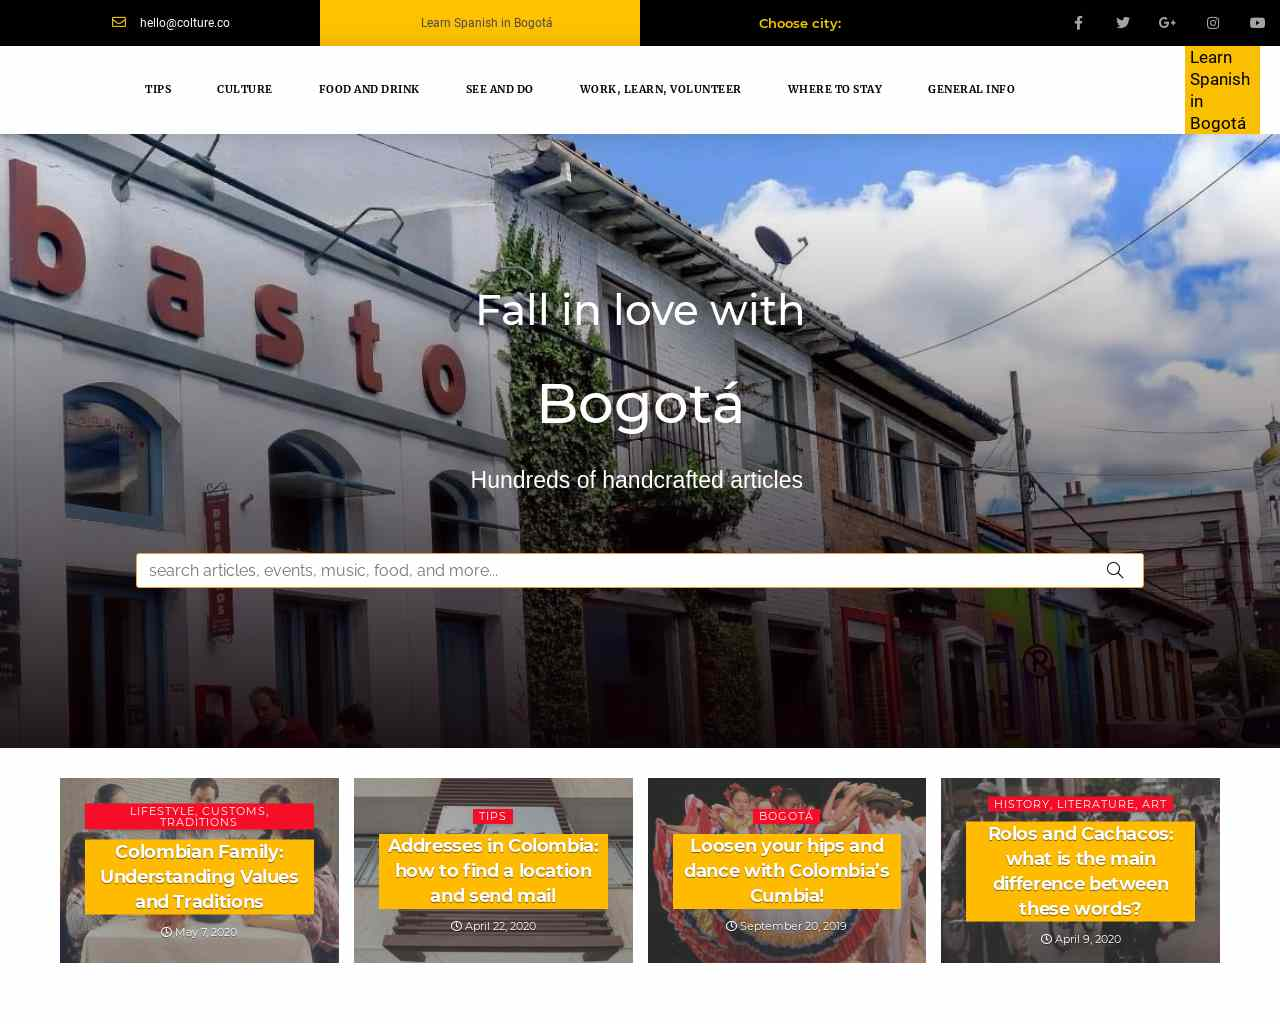 Colture | Articles, events, tips and more about Bogota - You will love it